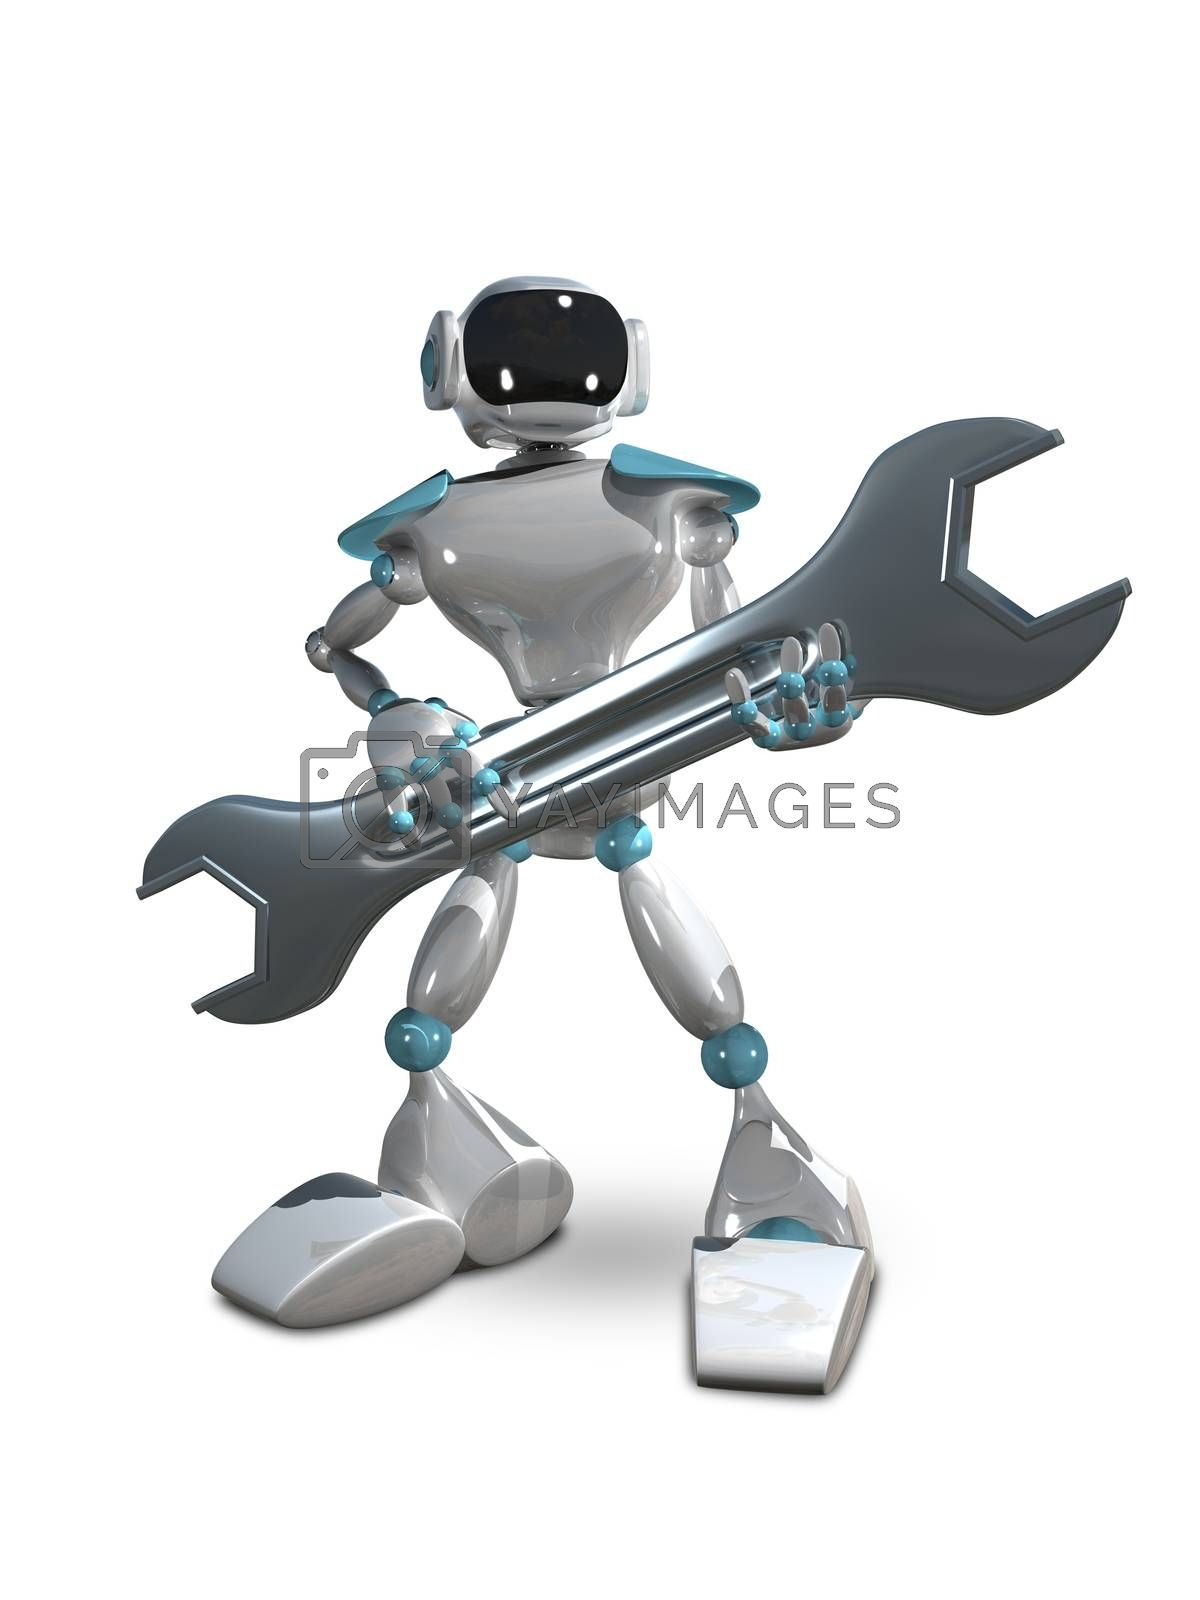 3D Illustration of White Robot with Wrench